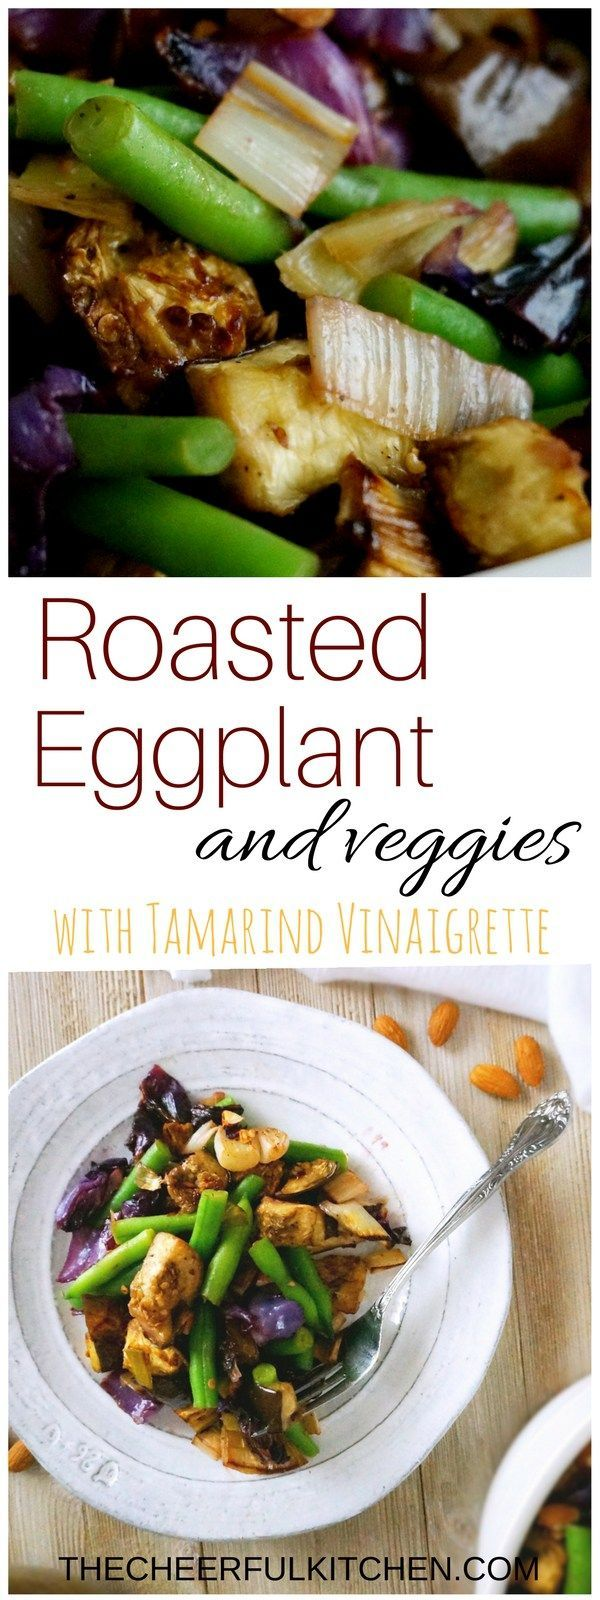 Roasted Eggplant + Veggies with Tamarind Vinaigrette is an unusual but totally delicious side dish or vegetarian main dish! Get the recipe at The Cheerful Kitchen